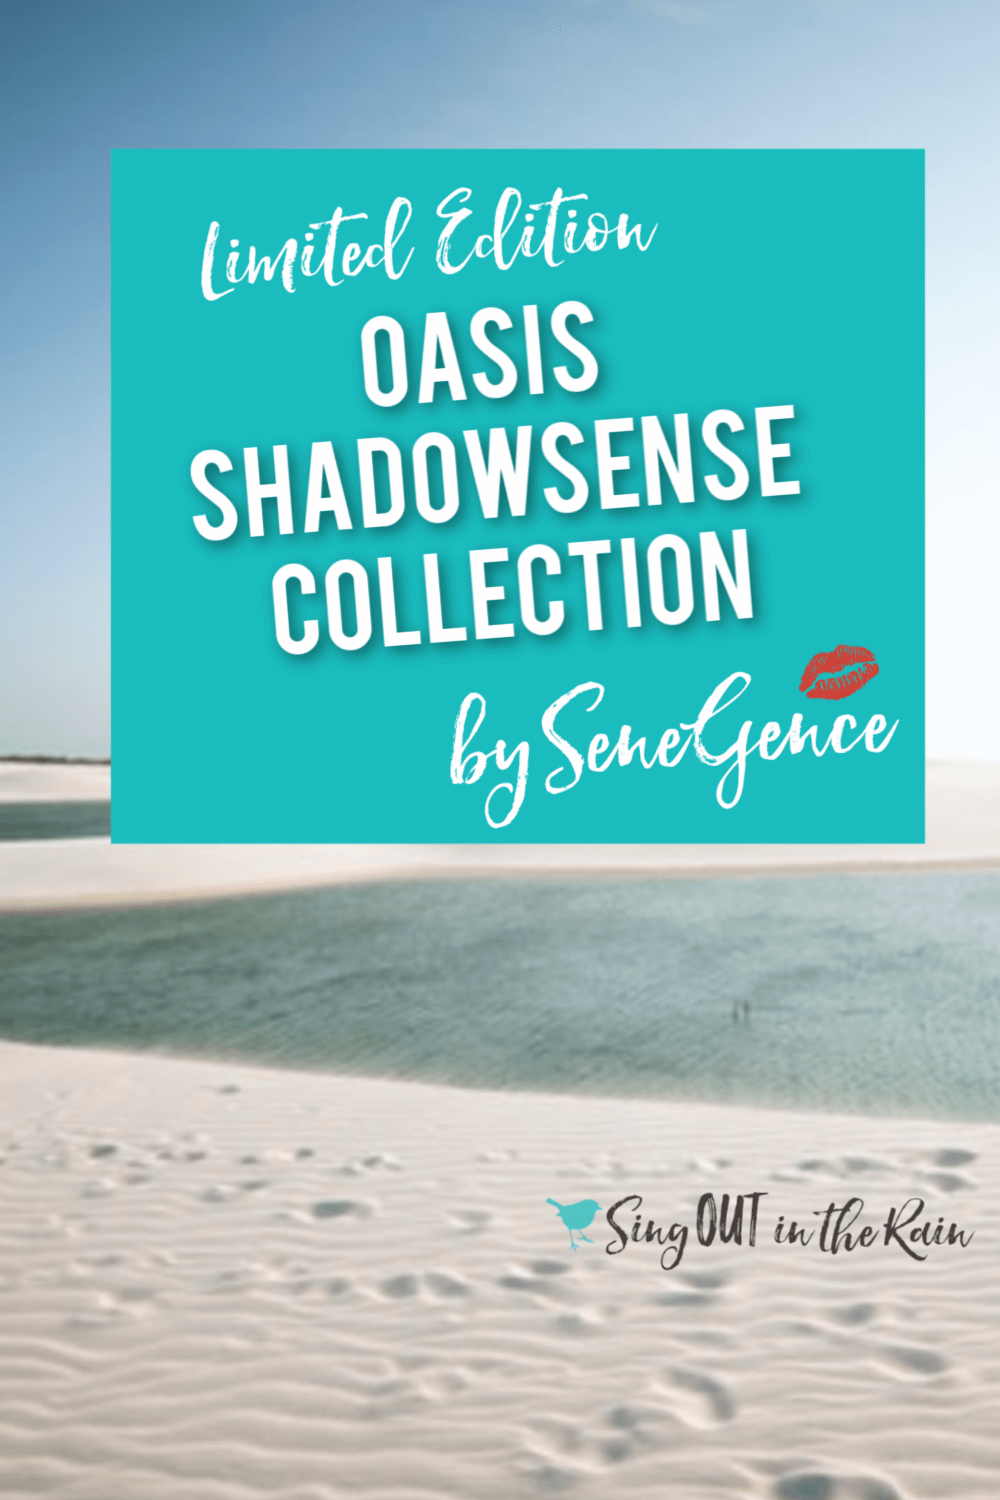 Oasis ShadowSense Collection by SeneGence includes Oasis Glitter and Dusk Shimmer eyeshadow.  These Limited Edition colors are new for Summer 2019 and will go perfectly with any outfit you can throw together.  Get your summer makeup fix on.  Eye makeup that lasts in the pool, ocean and at the lake is NOT common.  Take advantage and get your long lasting makeup today.   #senegence #oasiscollection #shadowsense